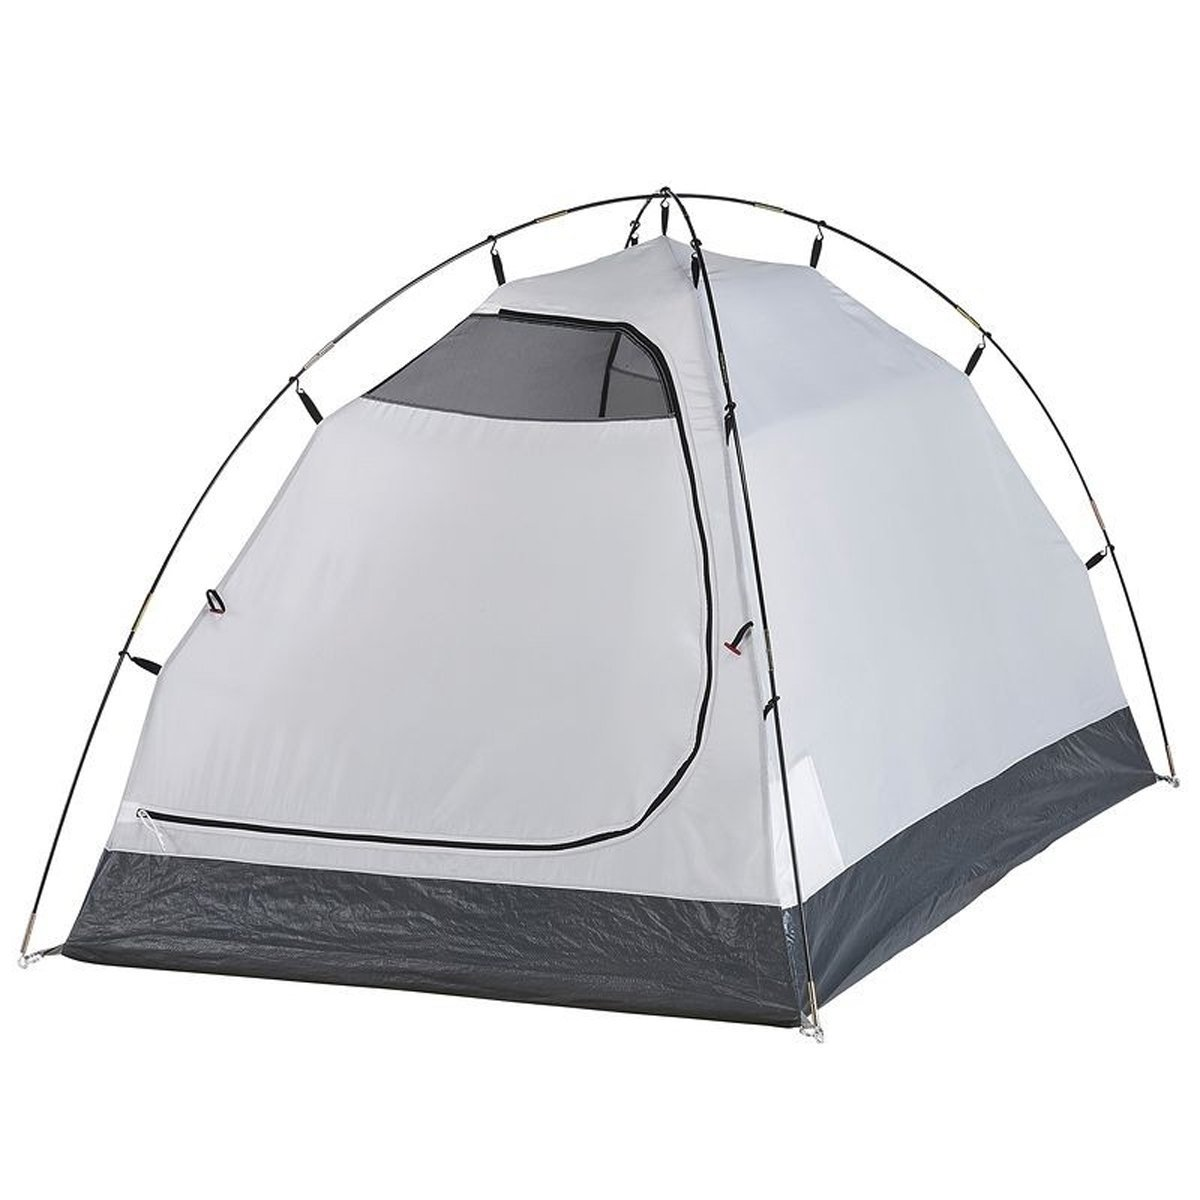 sc 1 st  Amazon.in & Quechua Arpenaz 2 Tent (Green): Amazon.in: Sports Fitness u0026 Outdoors